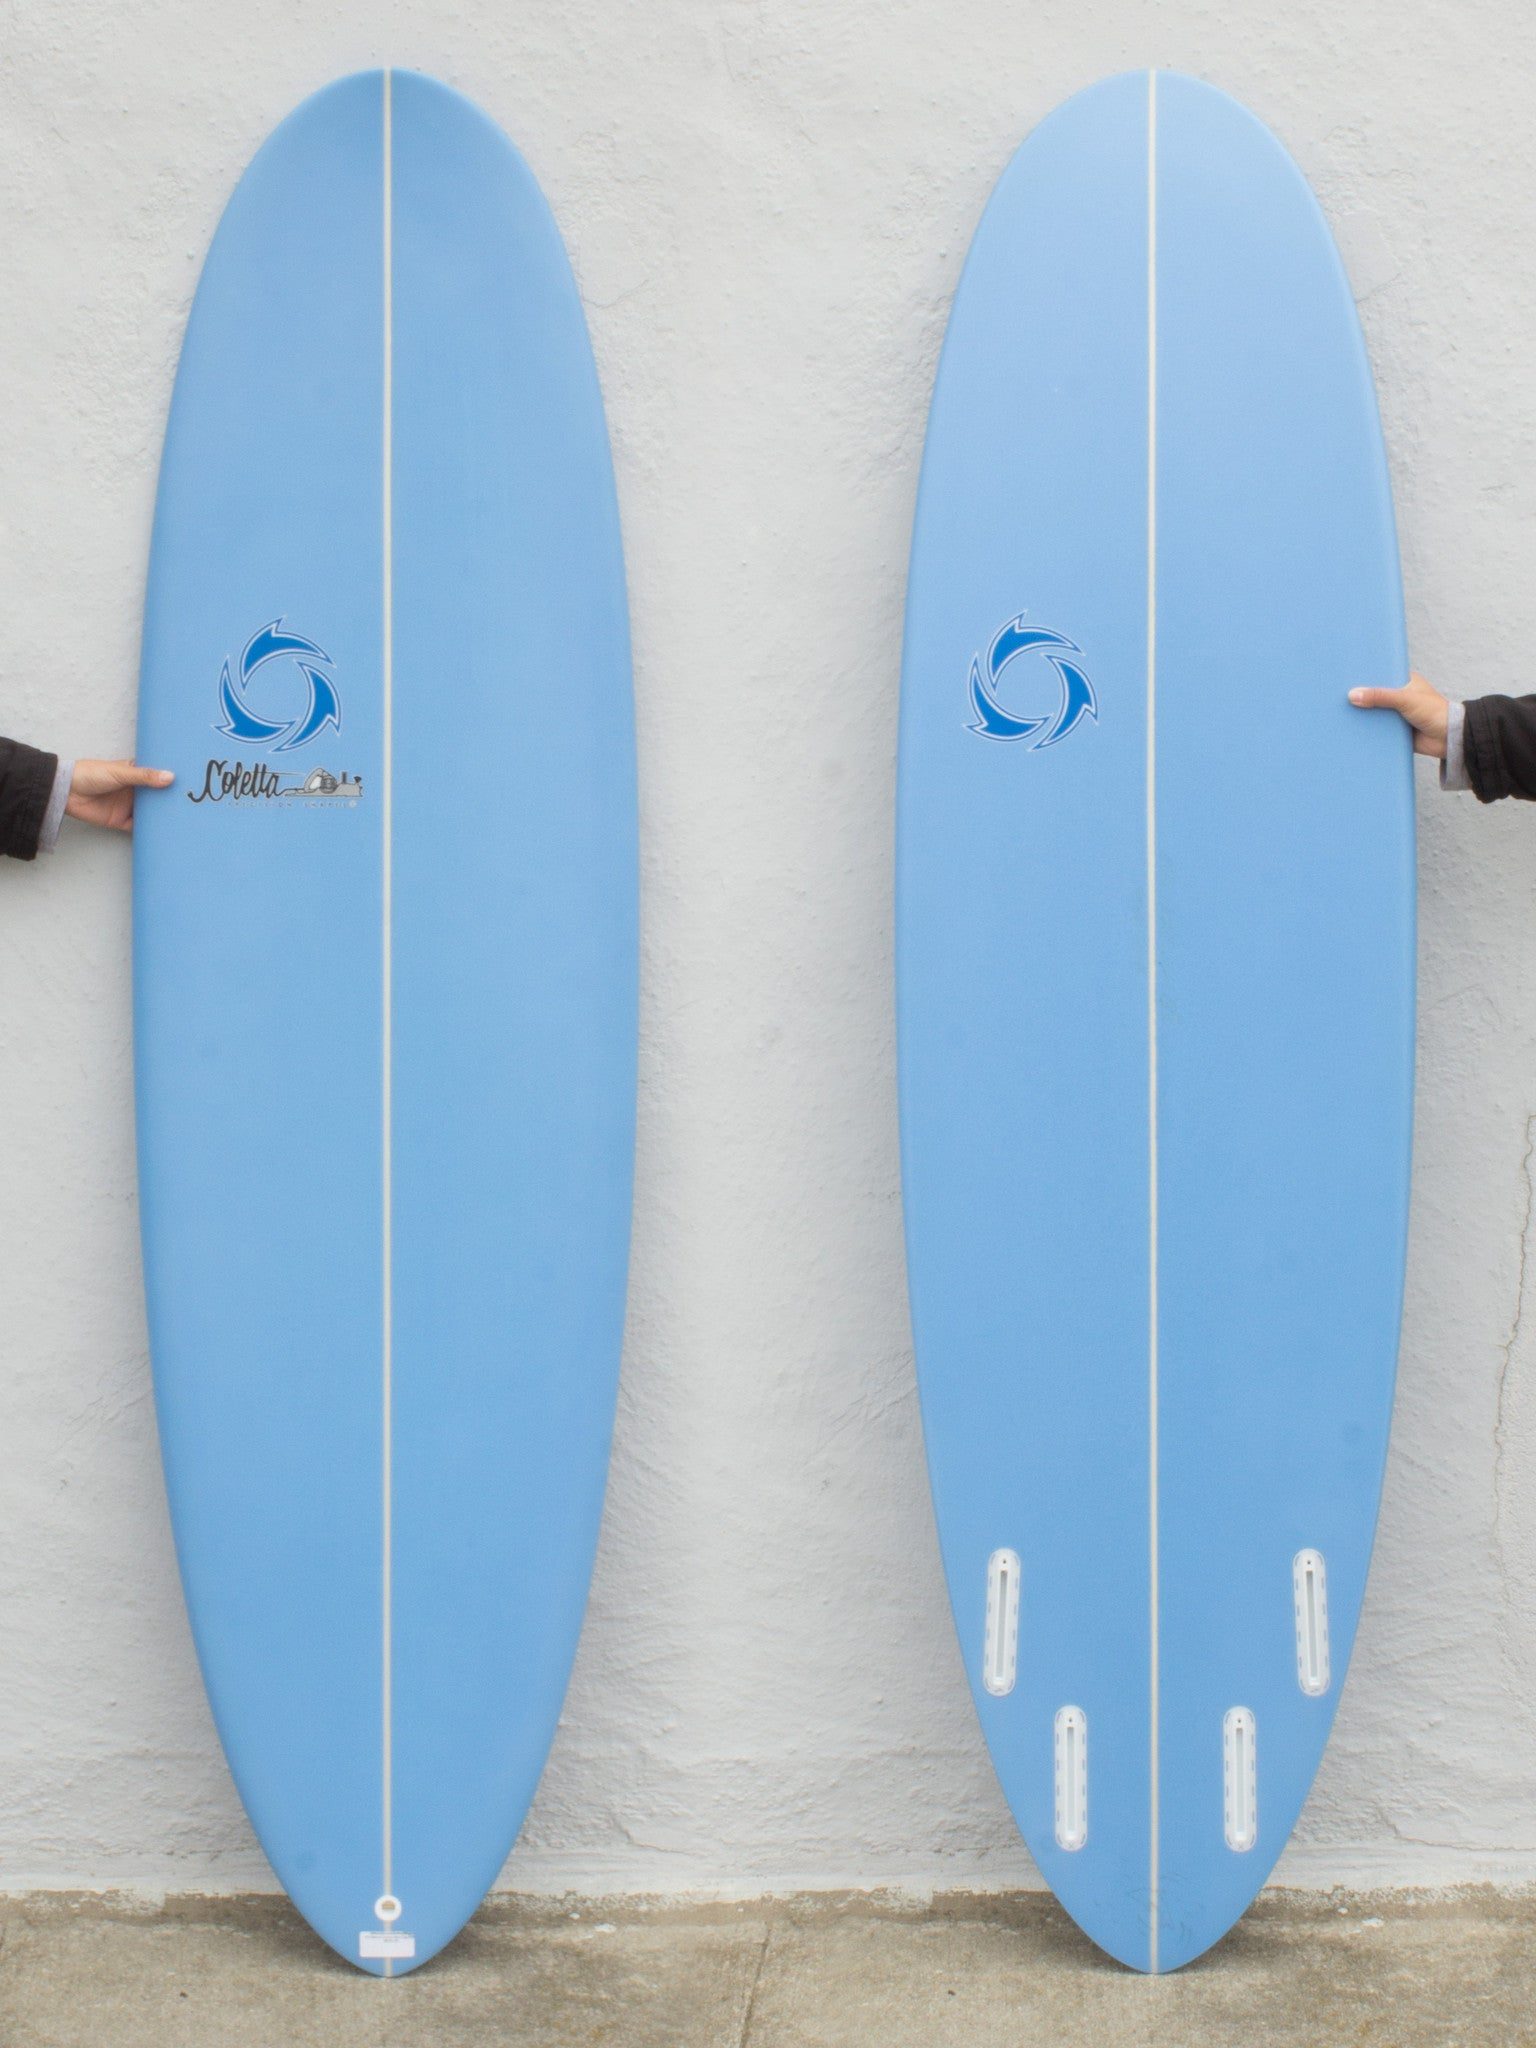 6'4 Natural Curves Stub Egg Quad